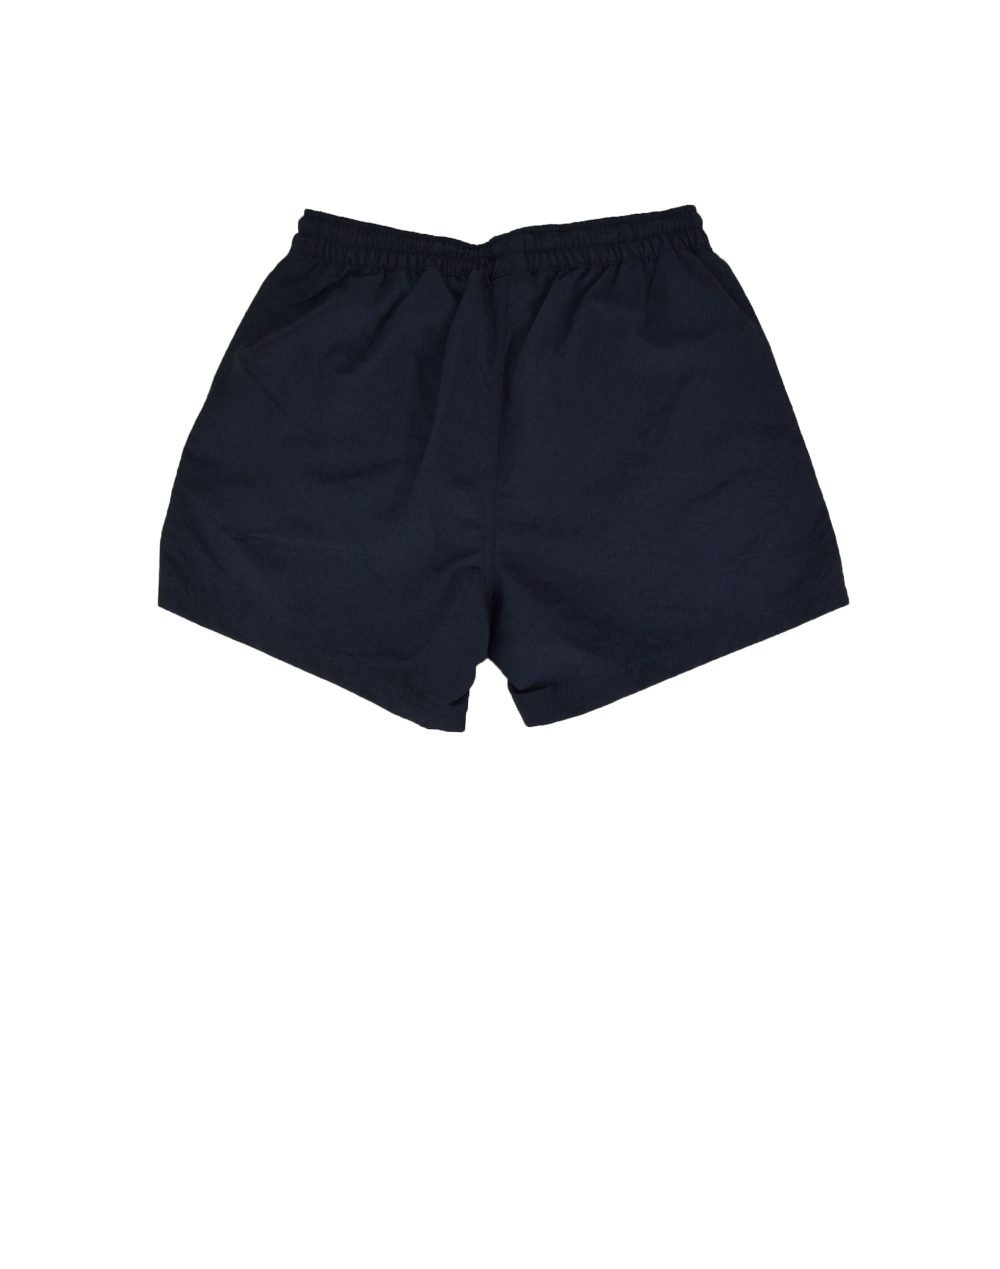 Helly Hansen Cascais Trunk (34031-597) Navy